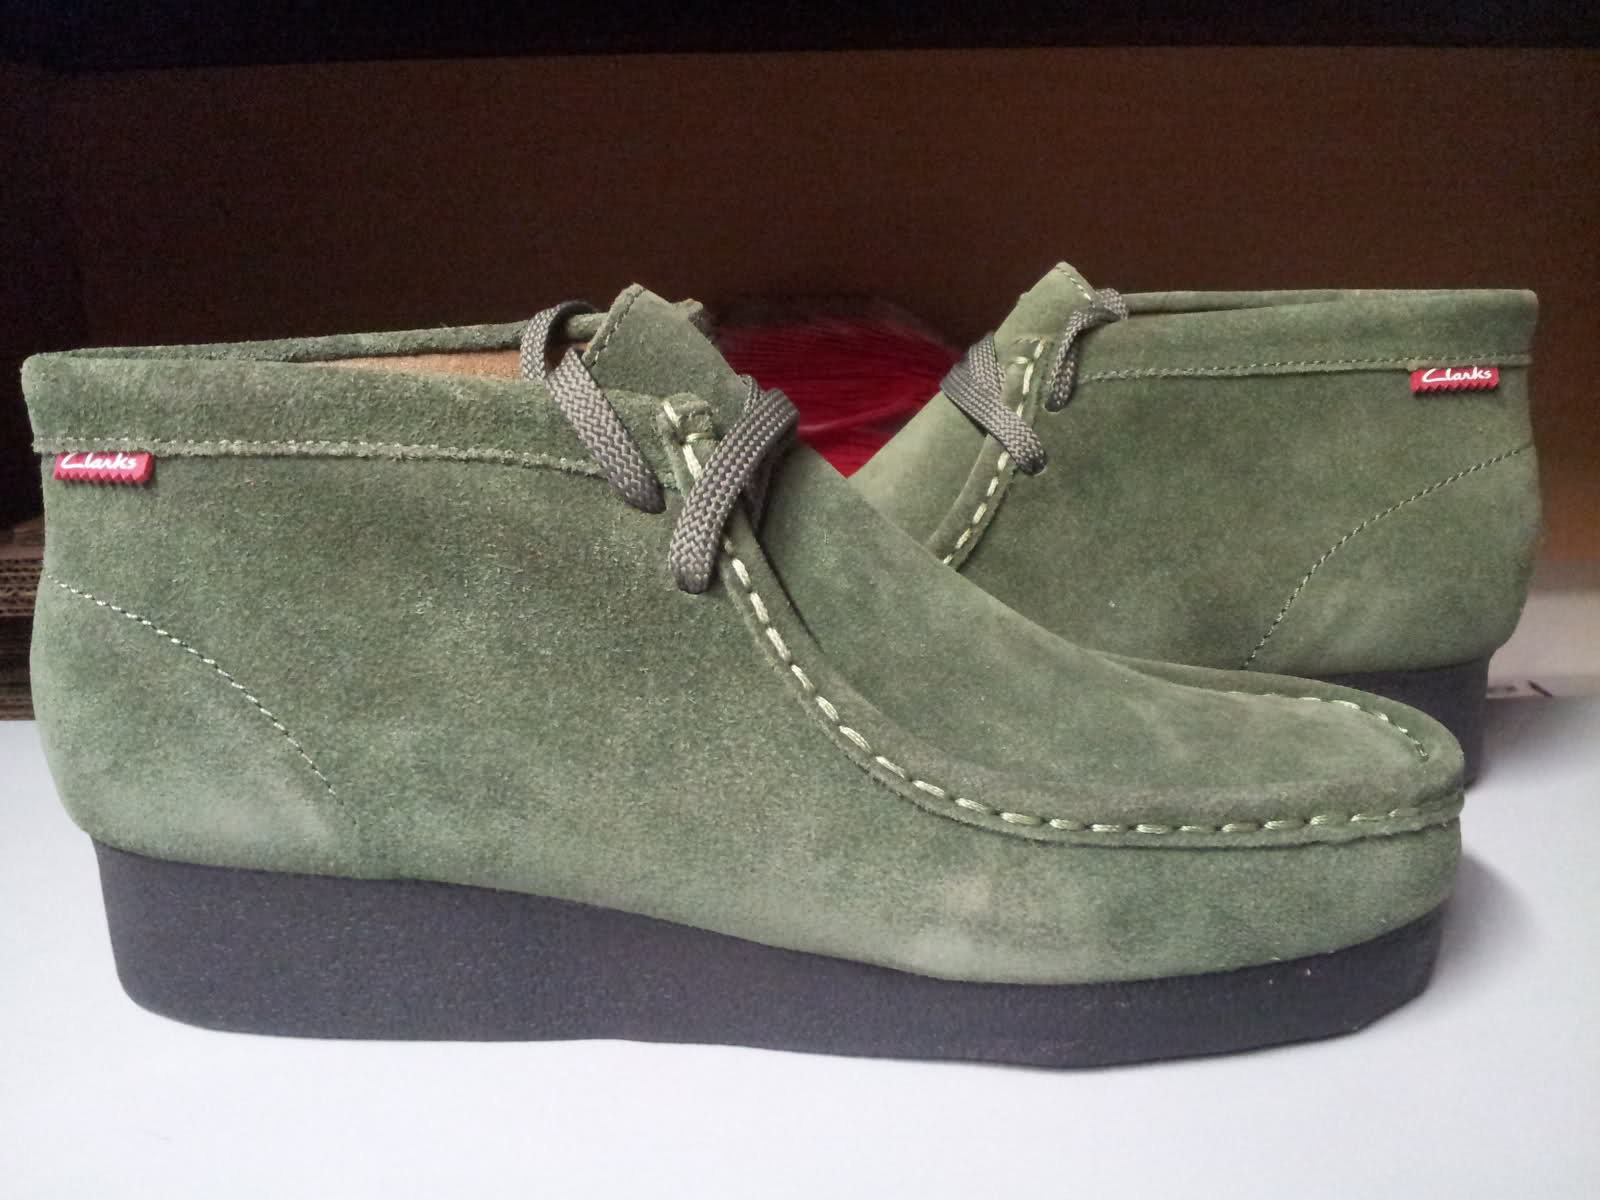 Womens Wallabees | Wallabee Shoes Womens | Womens Clarks Wallabee